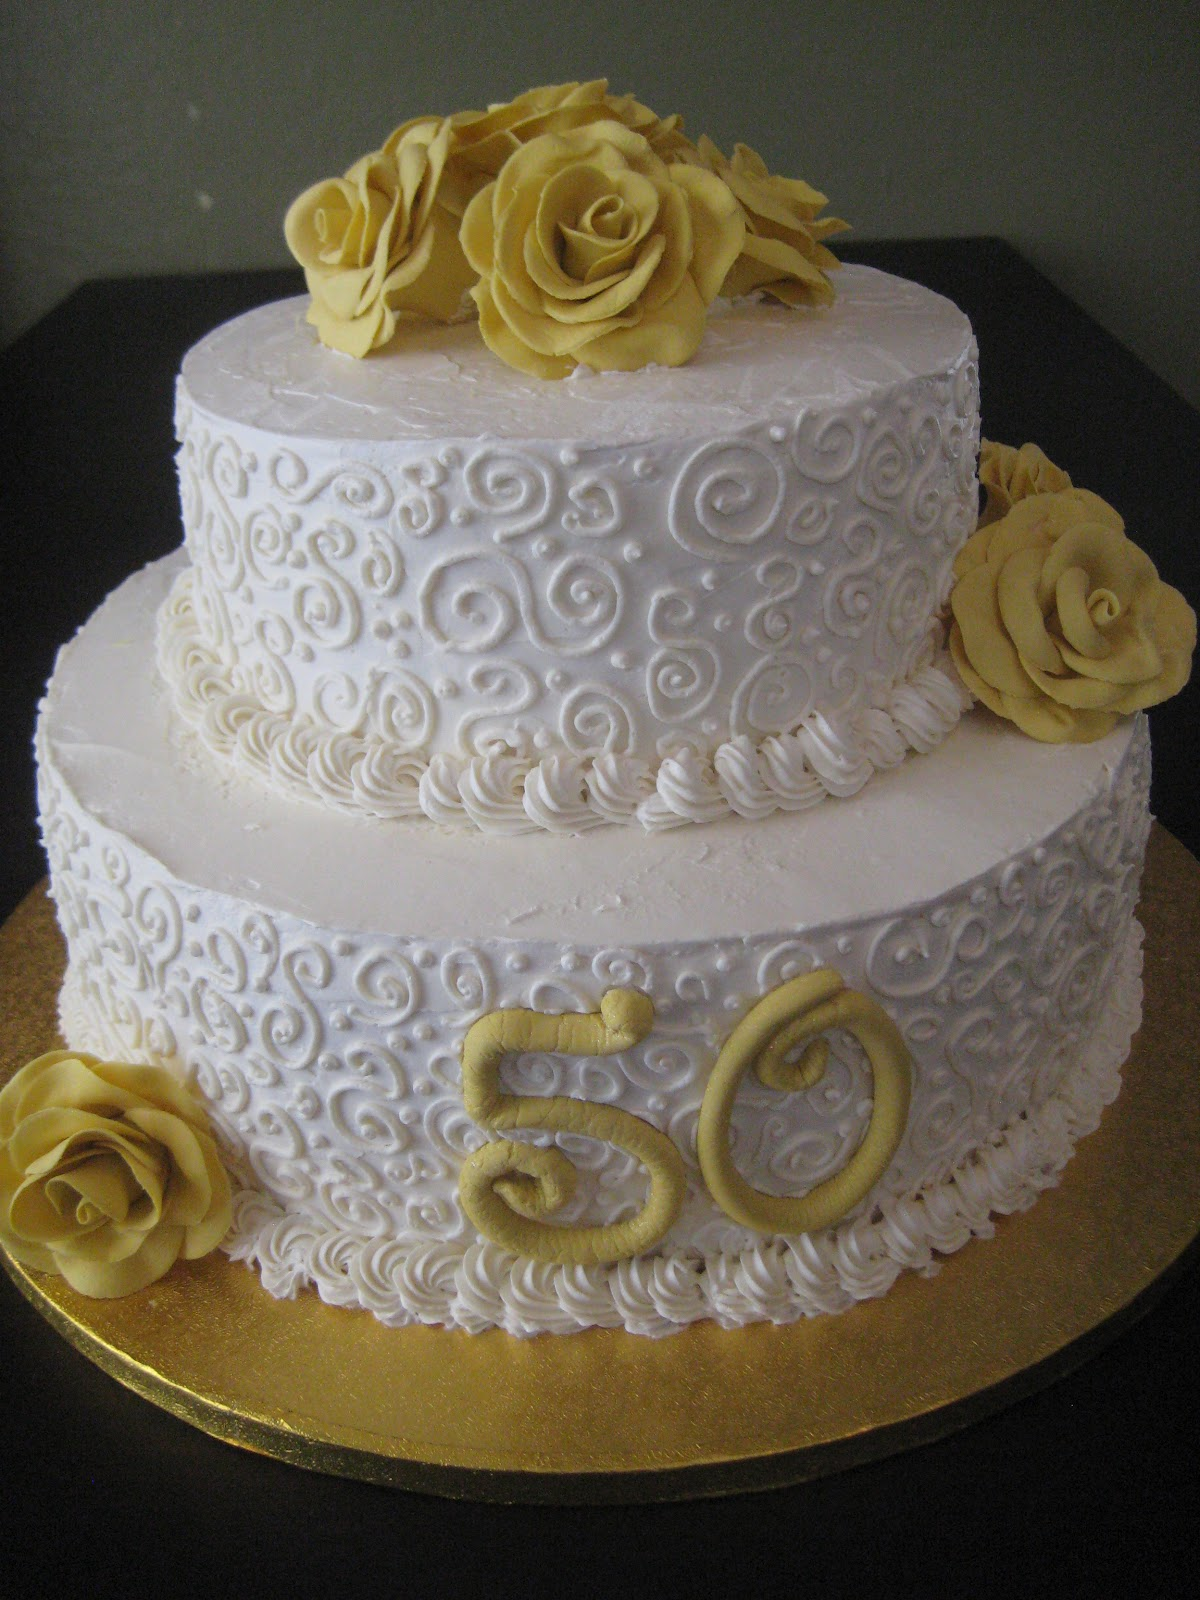 thenaughtytartebaking 50th wedding anniversary cake. Black Bedroom Furniture Sets. Home Design Ideas